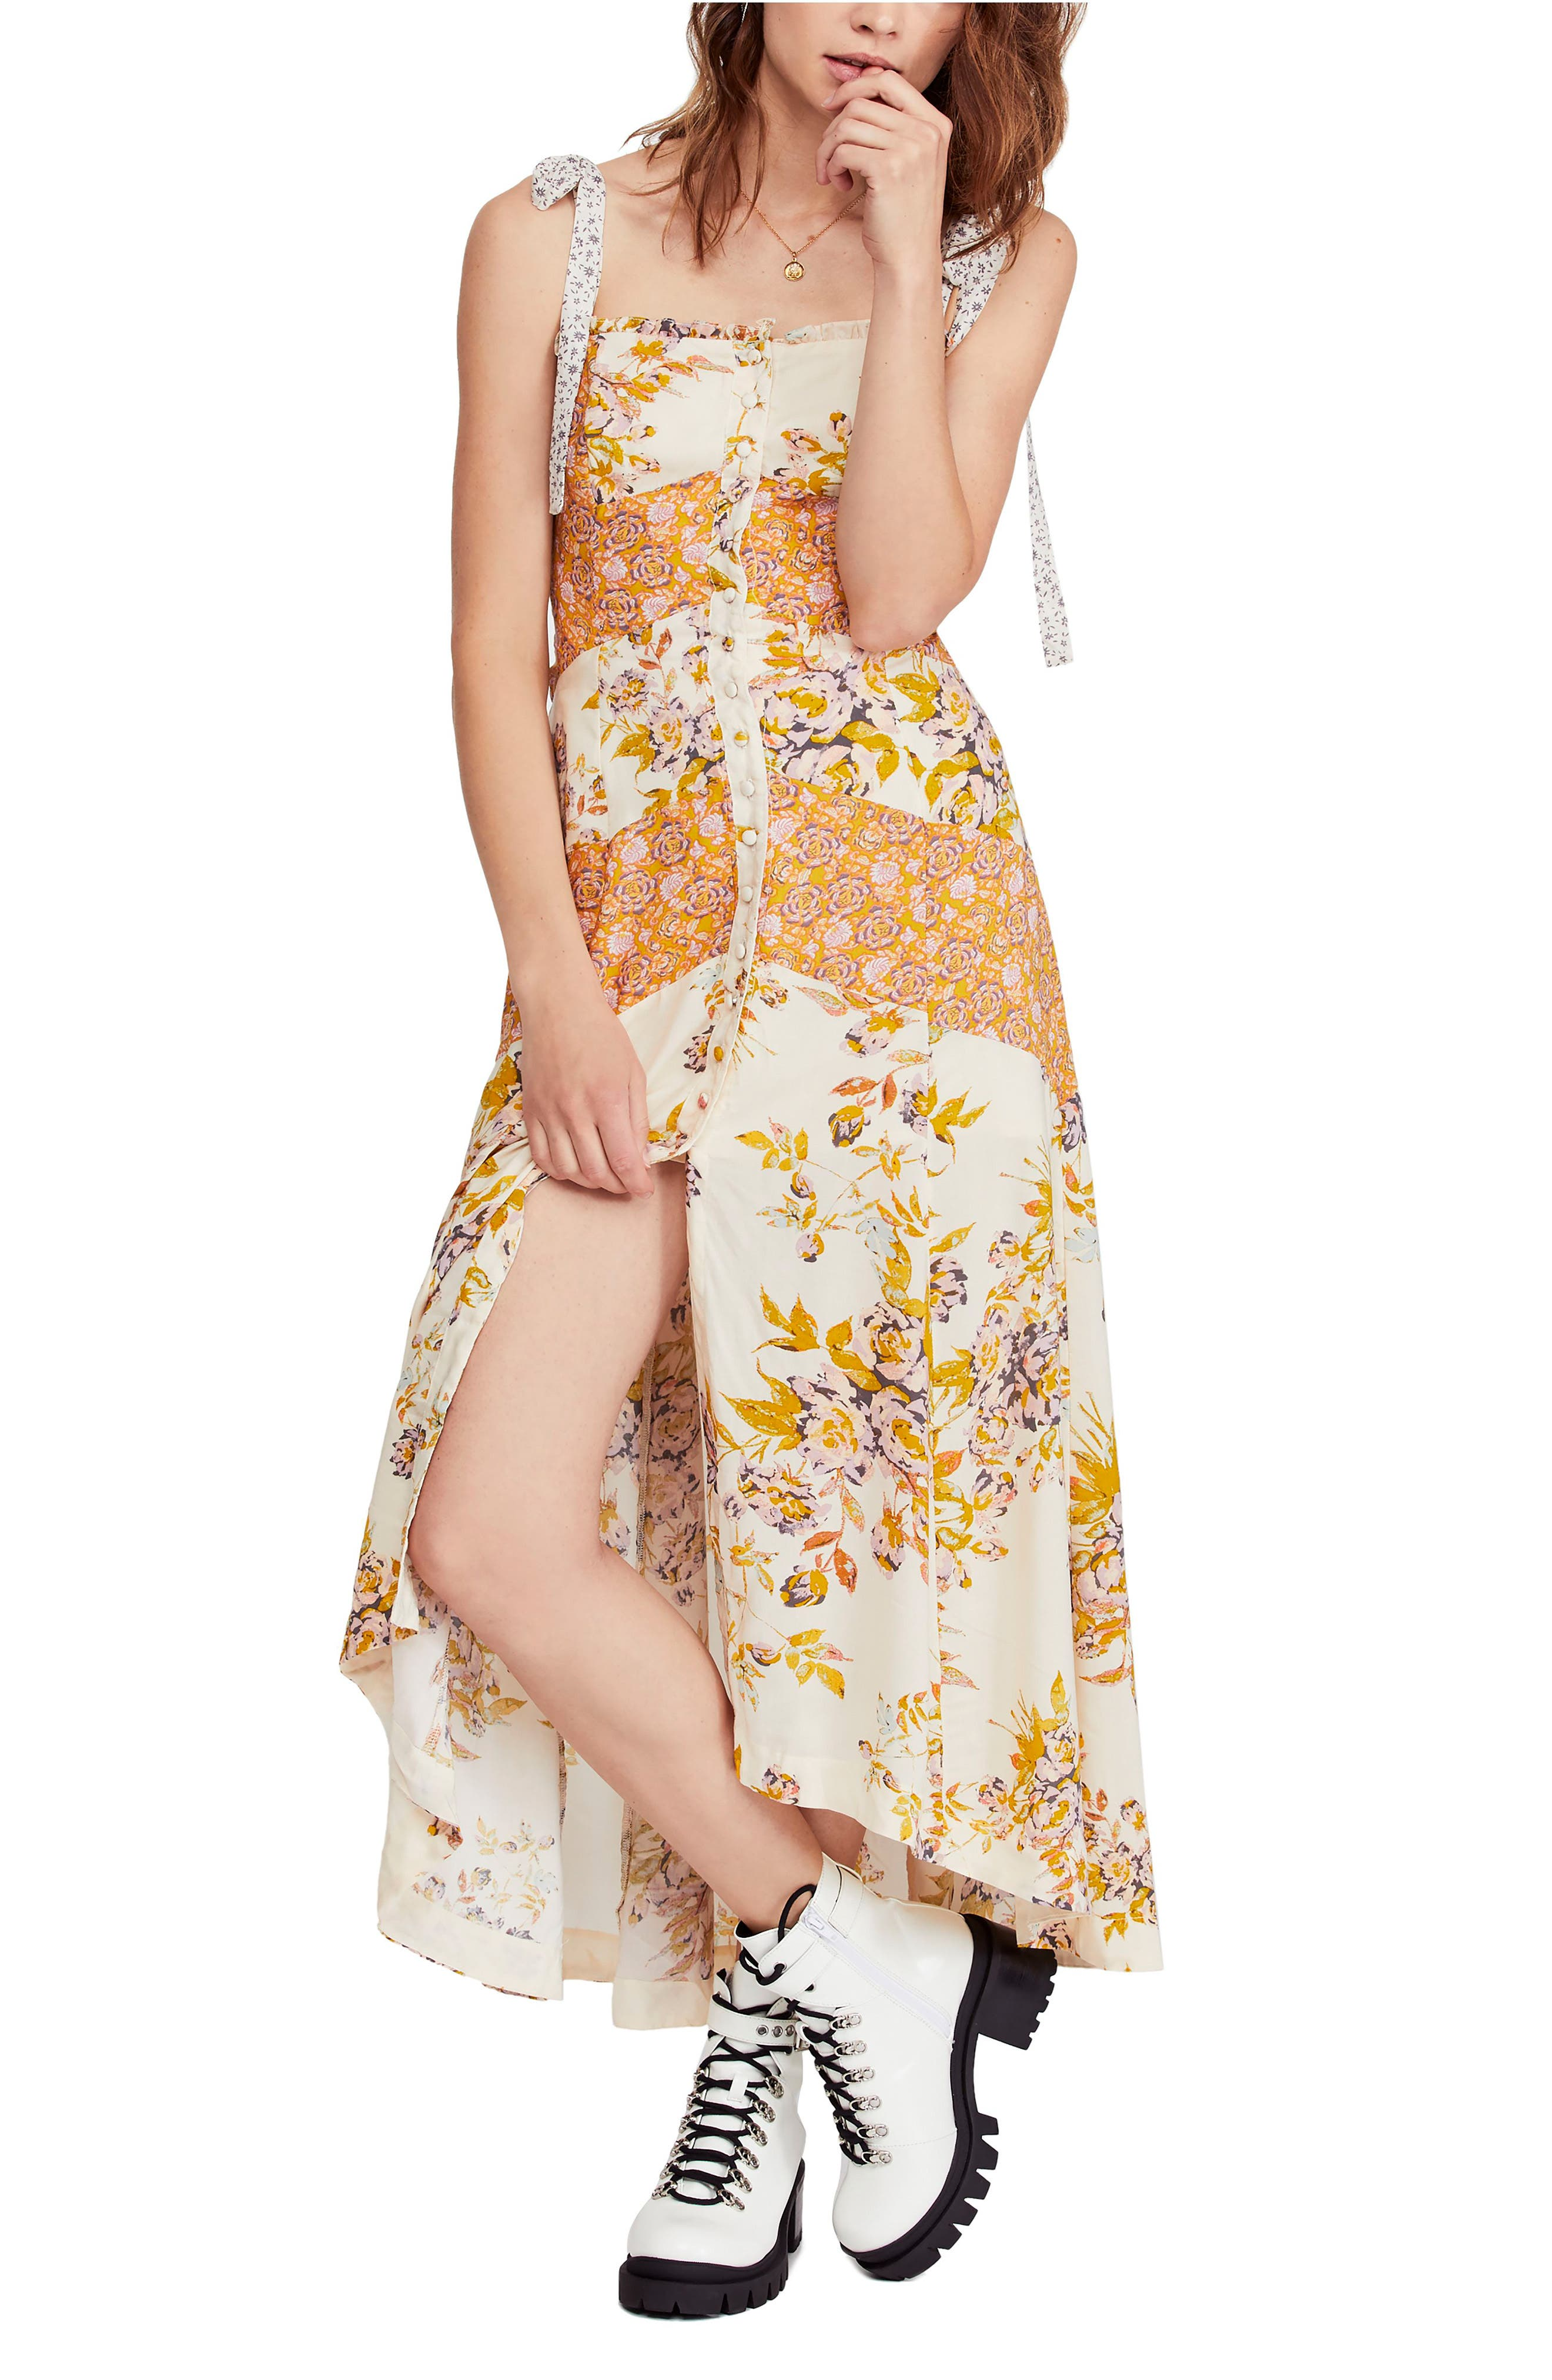 FREE PEOPLE, Lover Boy Maxi Dress, Main thumbnail 1, color, NEUTRAL COMBO